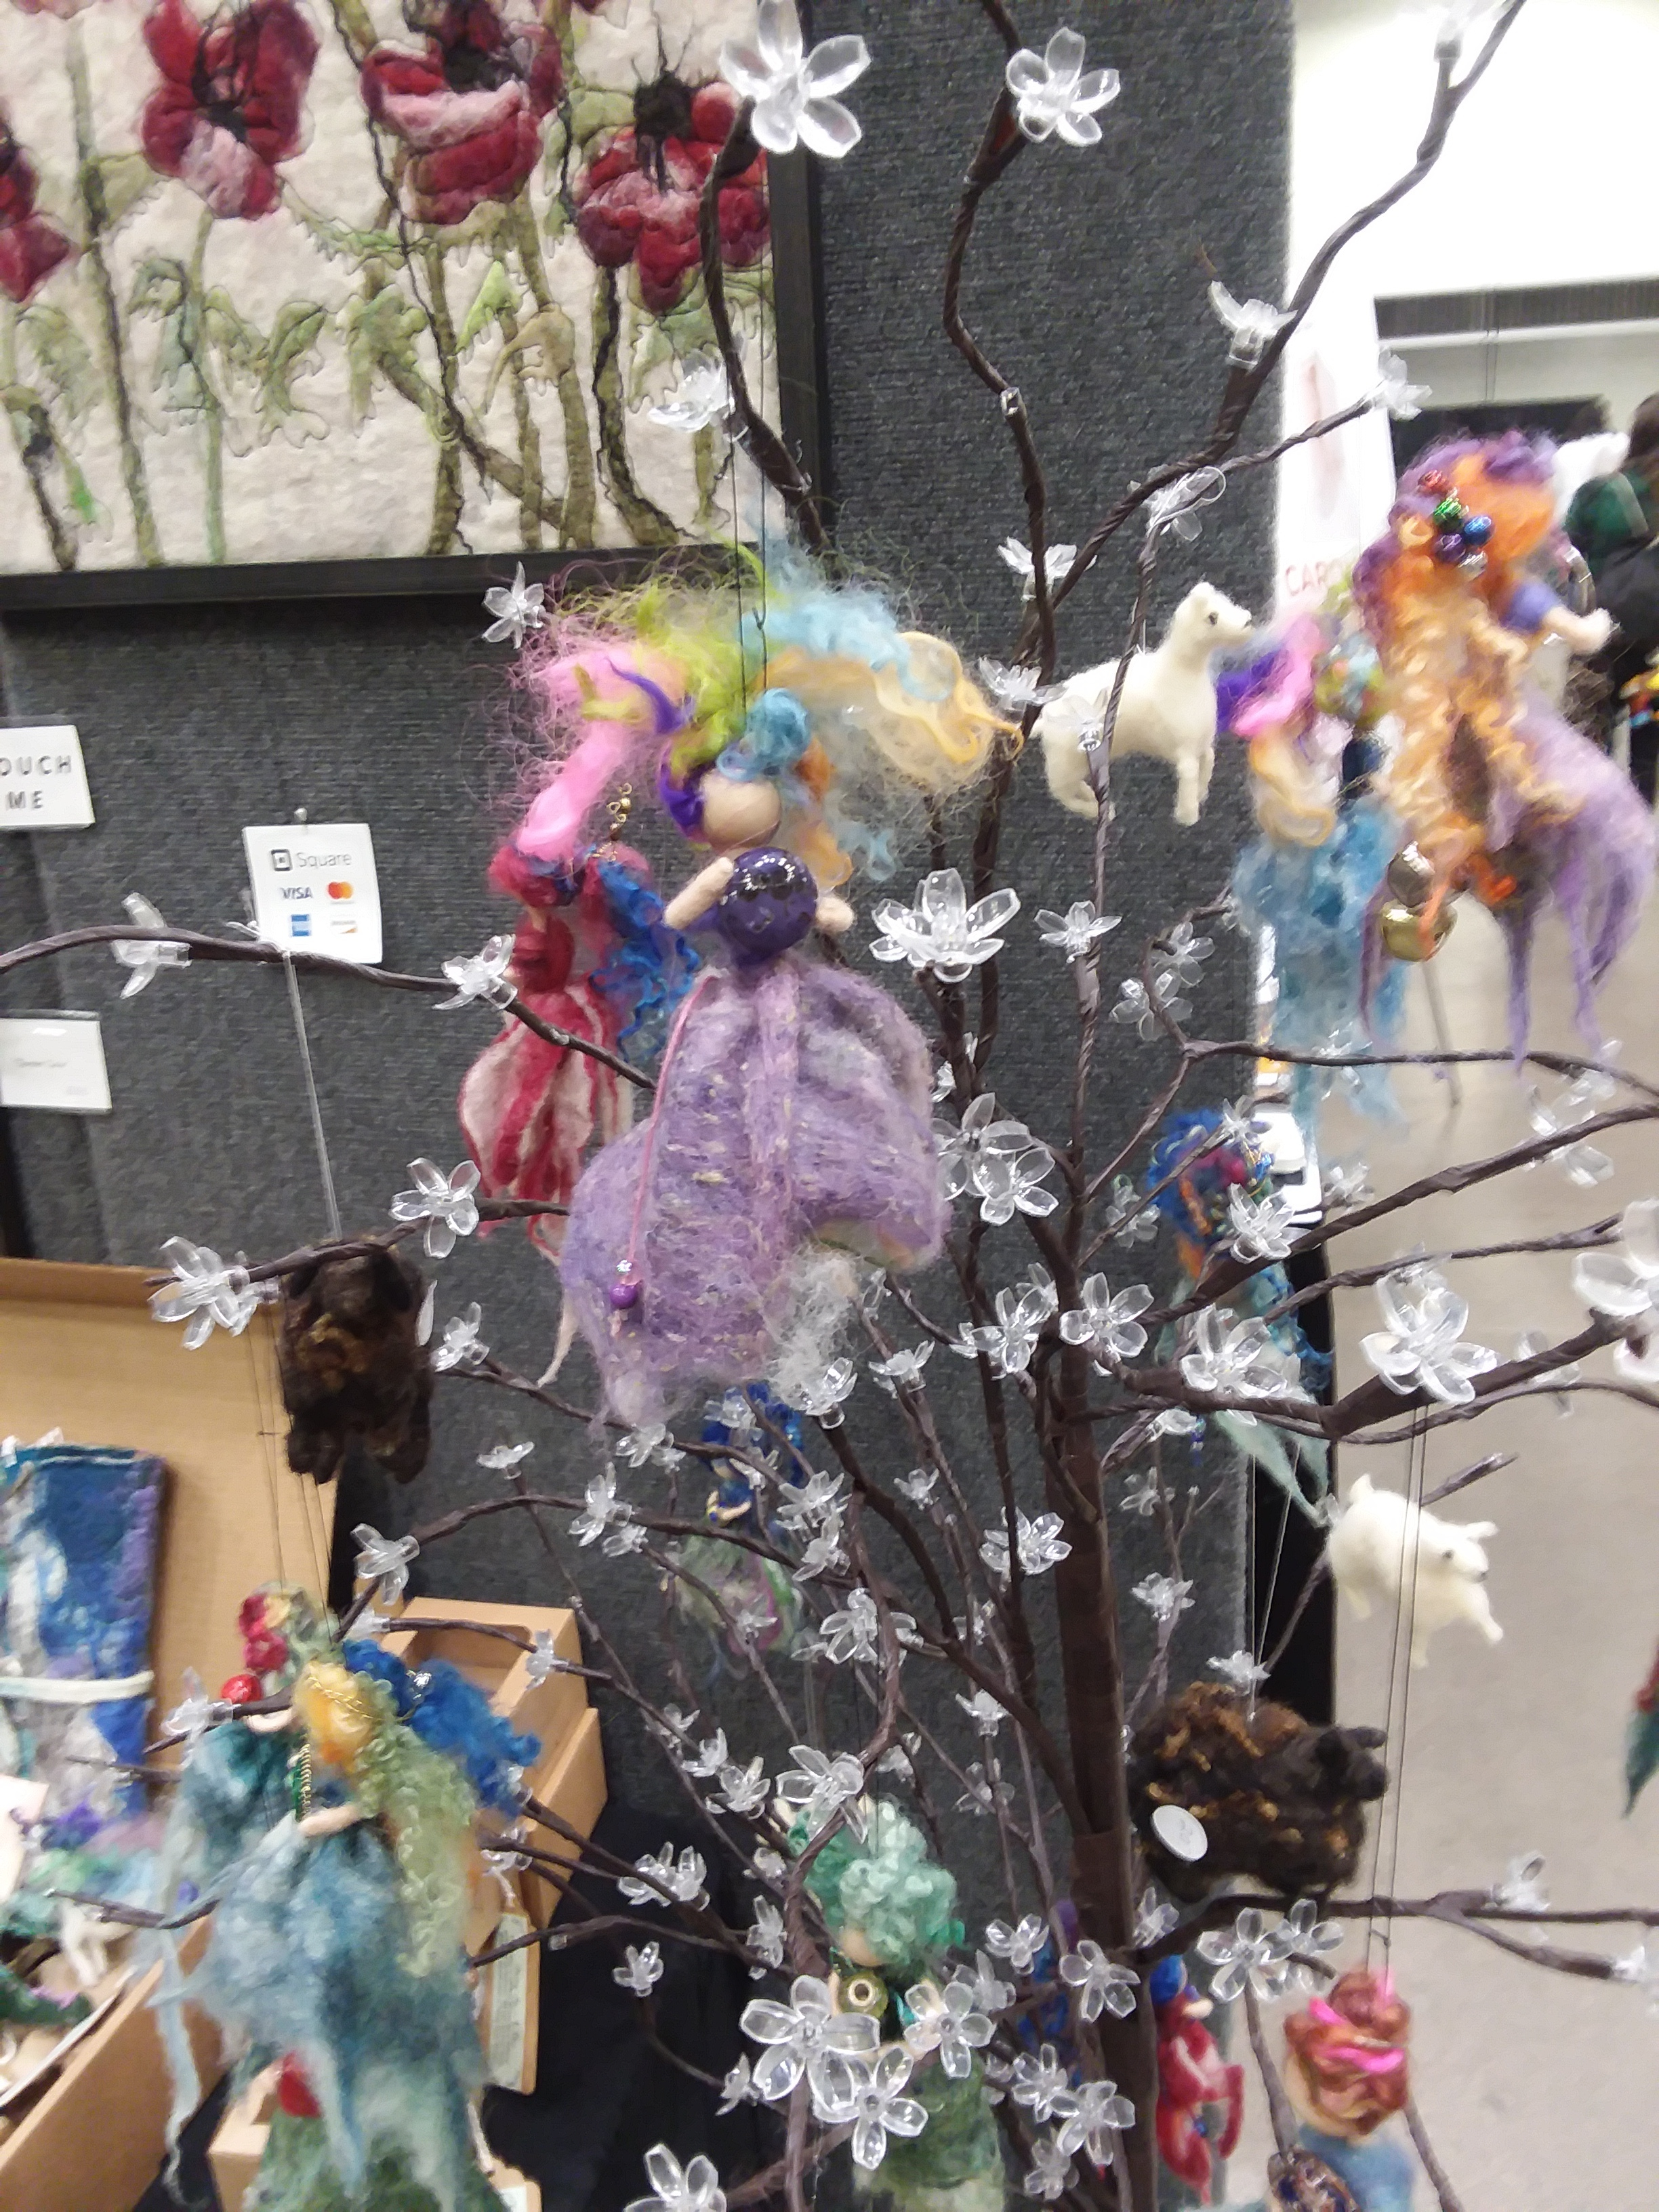 Felted fiber fairies at Anna Winette's booth.